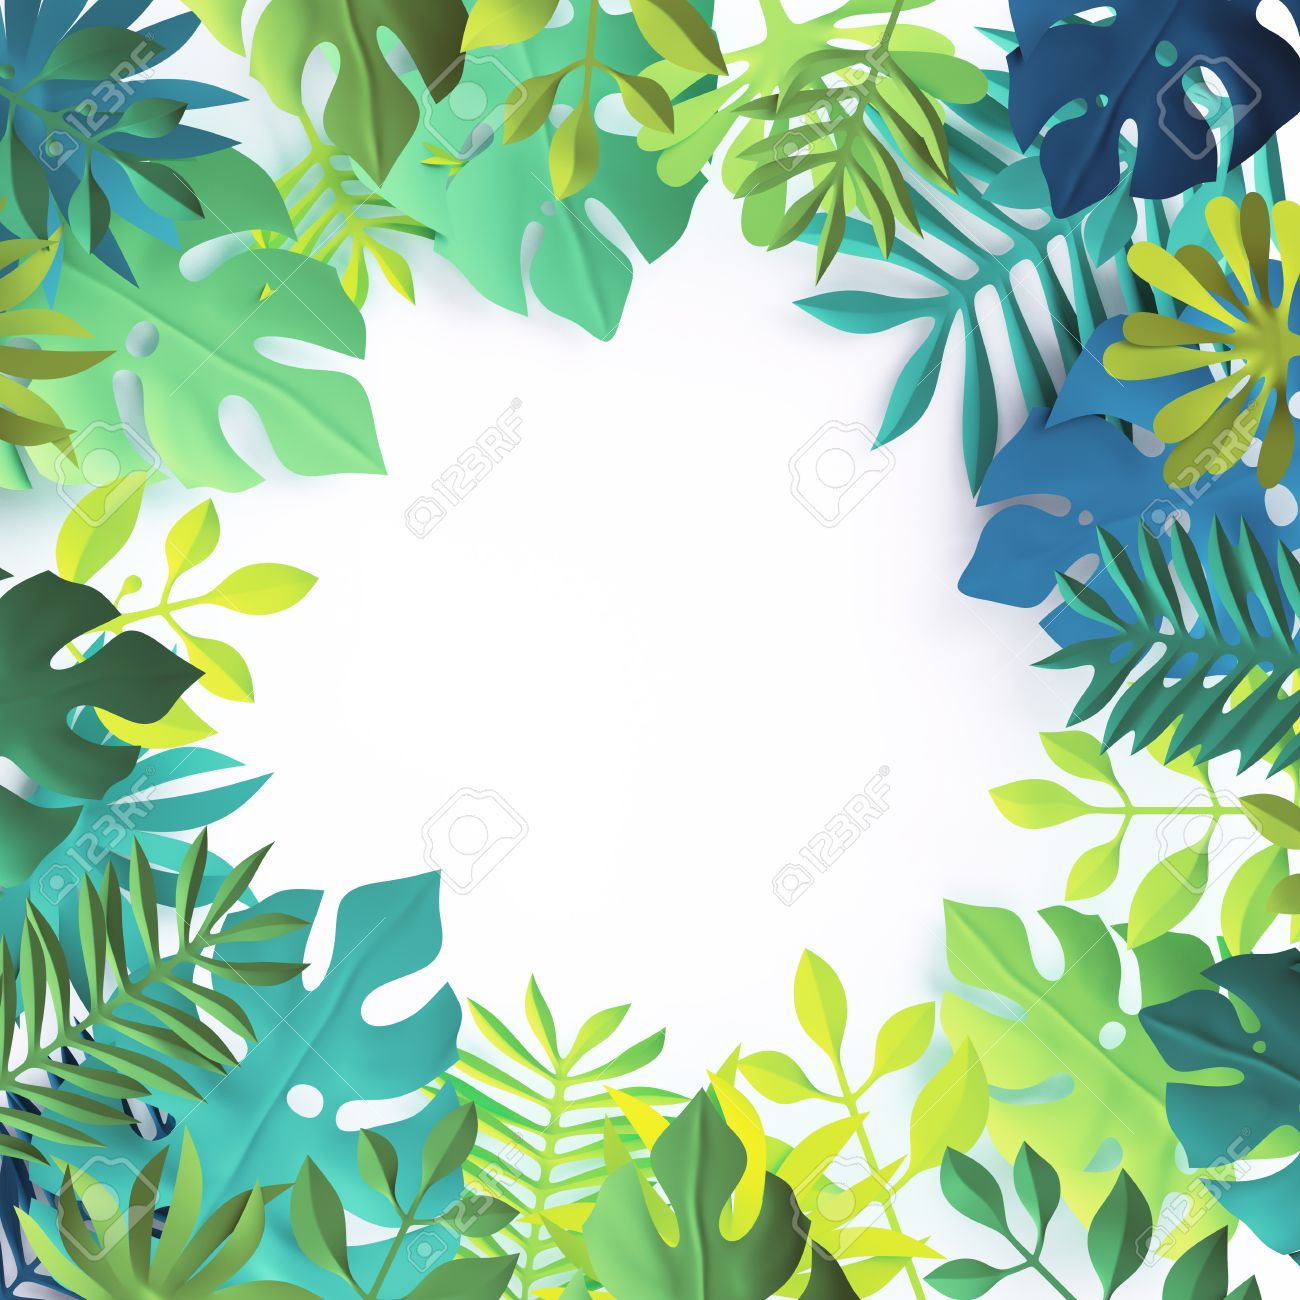 3d Tropical Paper Leaves Jungle Wallpaper Square Frame White